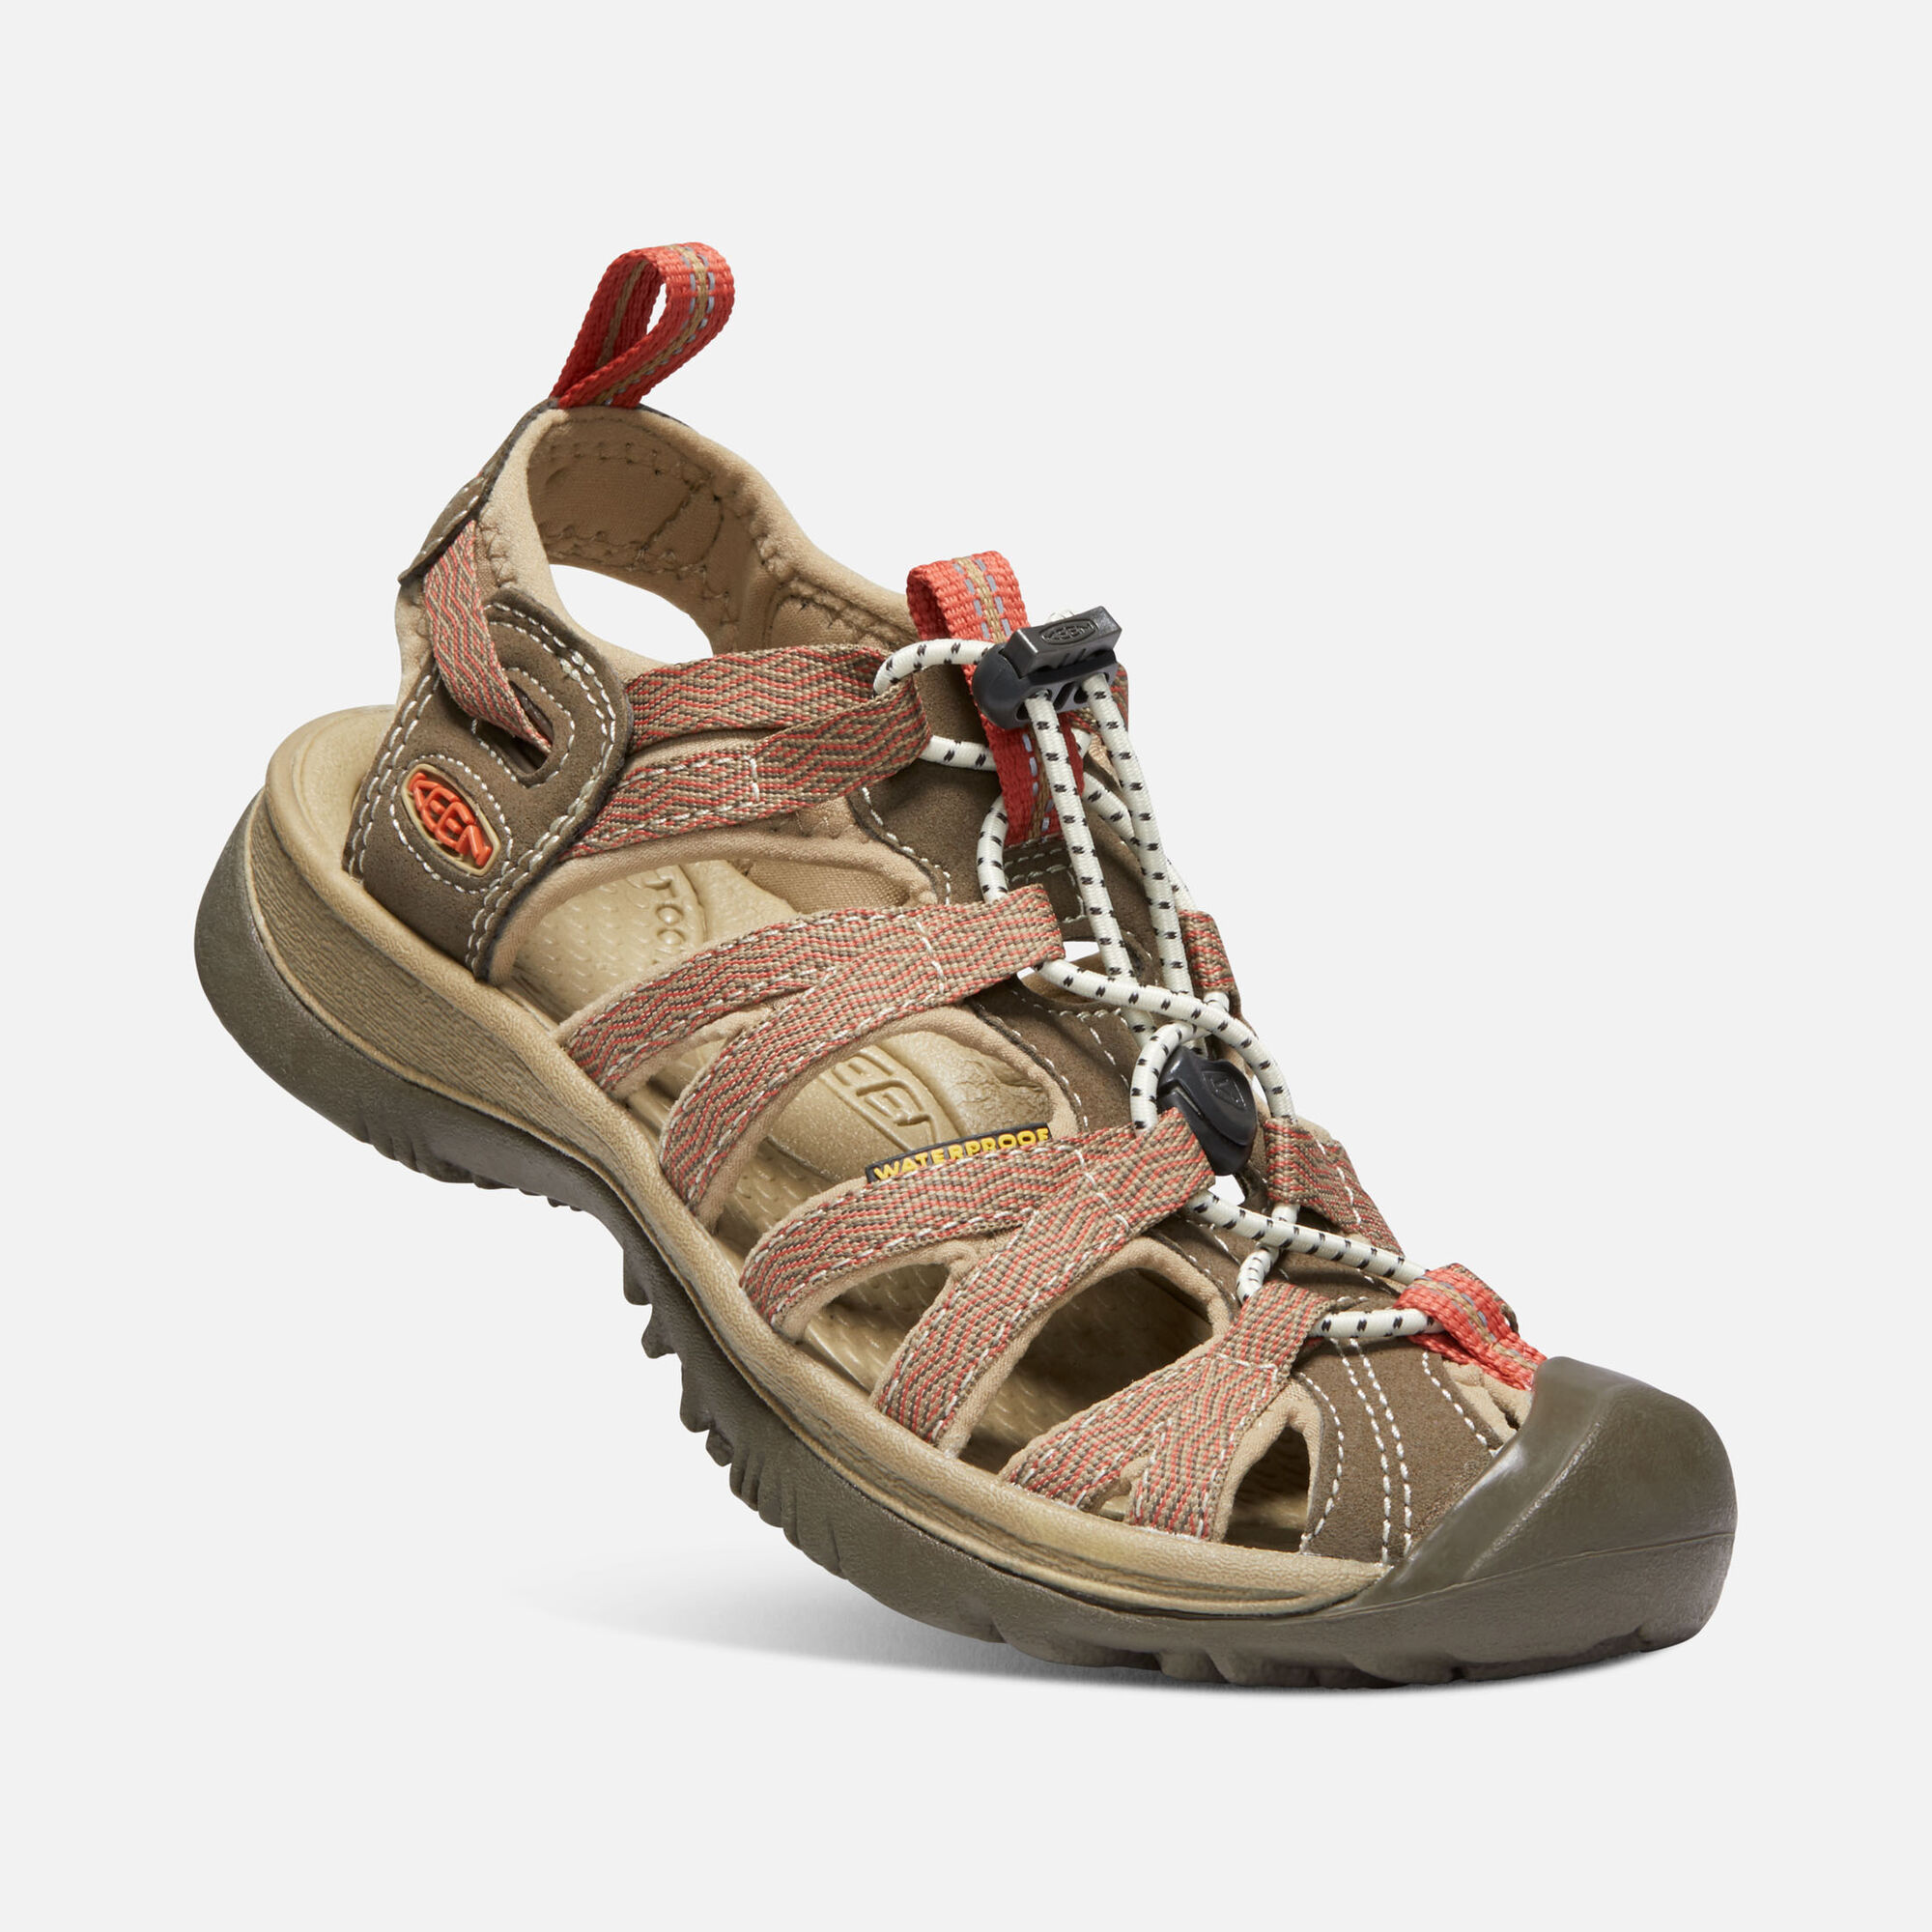 Womens Whisper Keen Footwear Inside Heels Karen Khaky 37 In Canteen Langoustino Small View